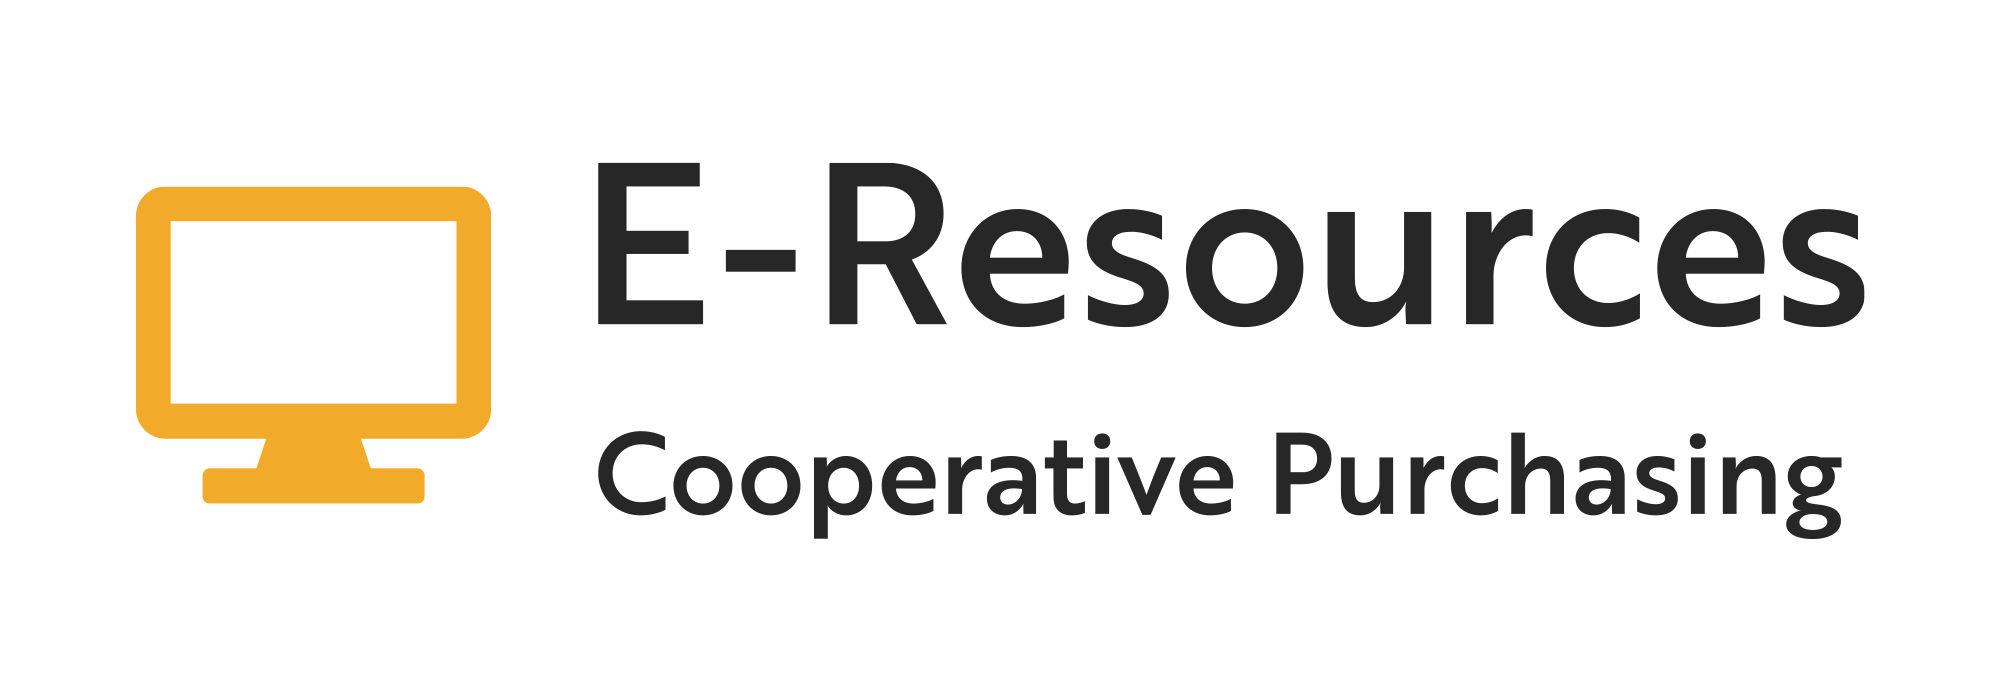 E-Resources: Cooperative Purchasing logo.